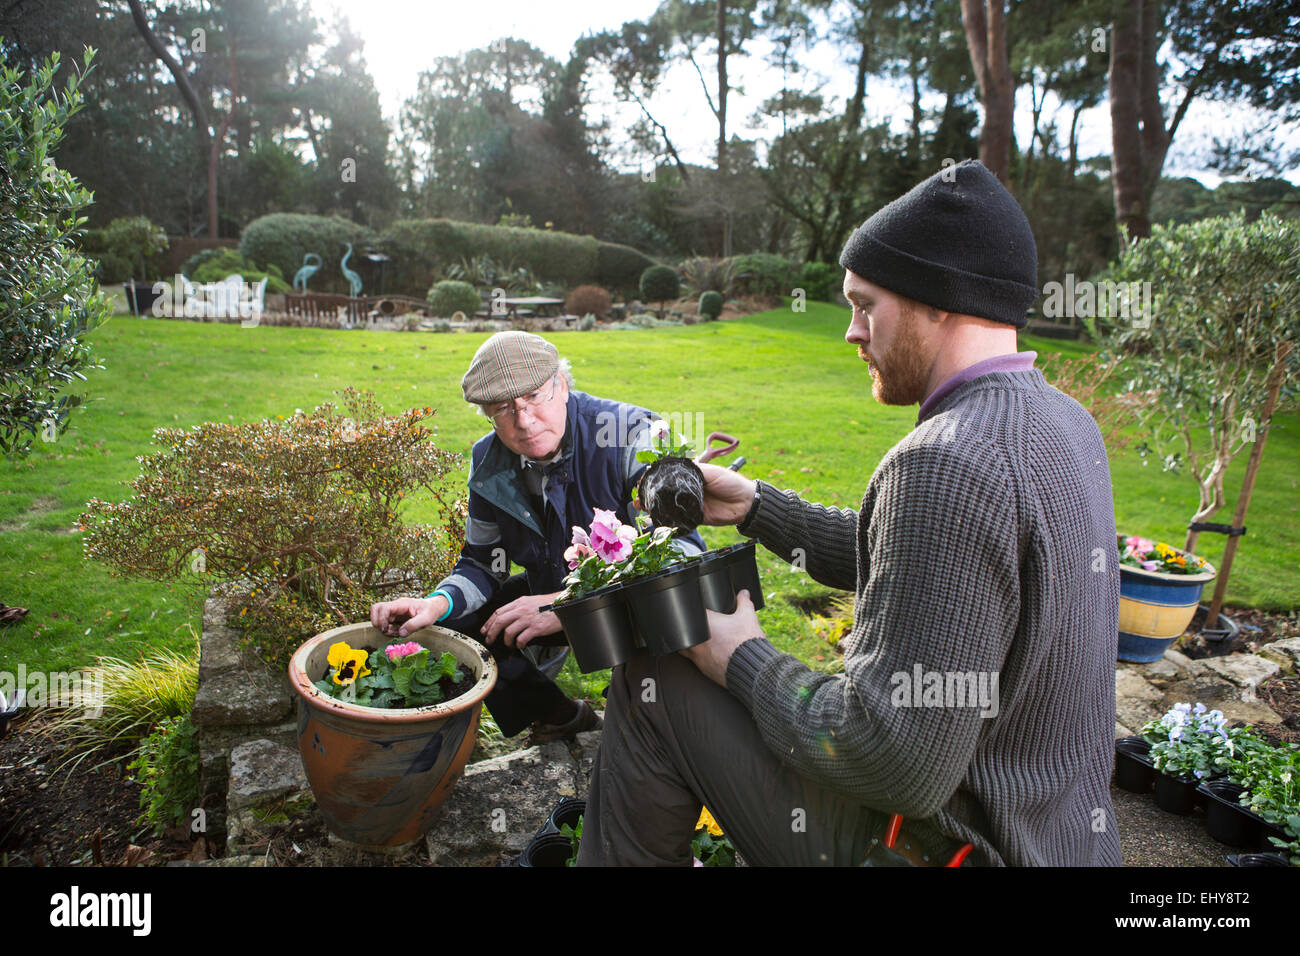 Two men working in garden together, Bournemouth, County Dorset, UK, Europe - Stock Image